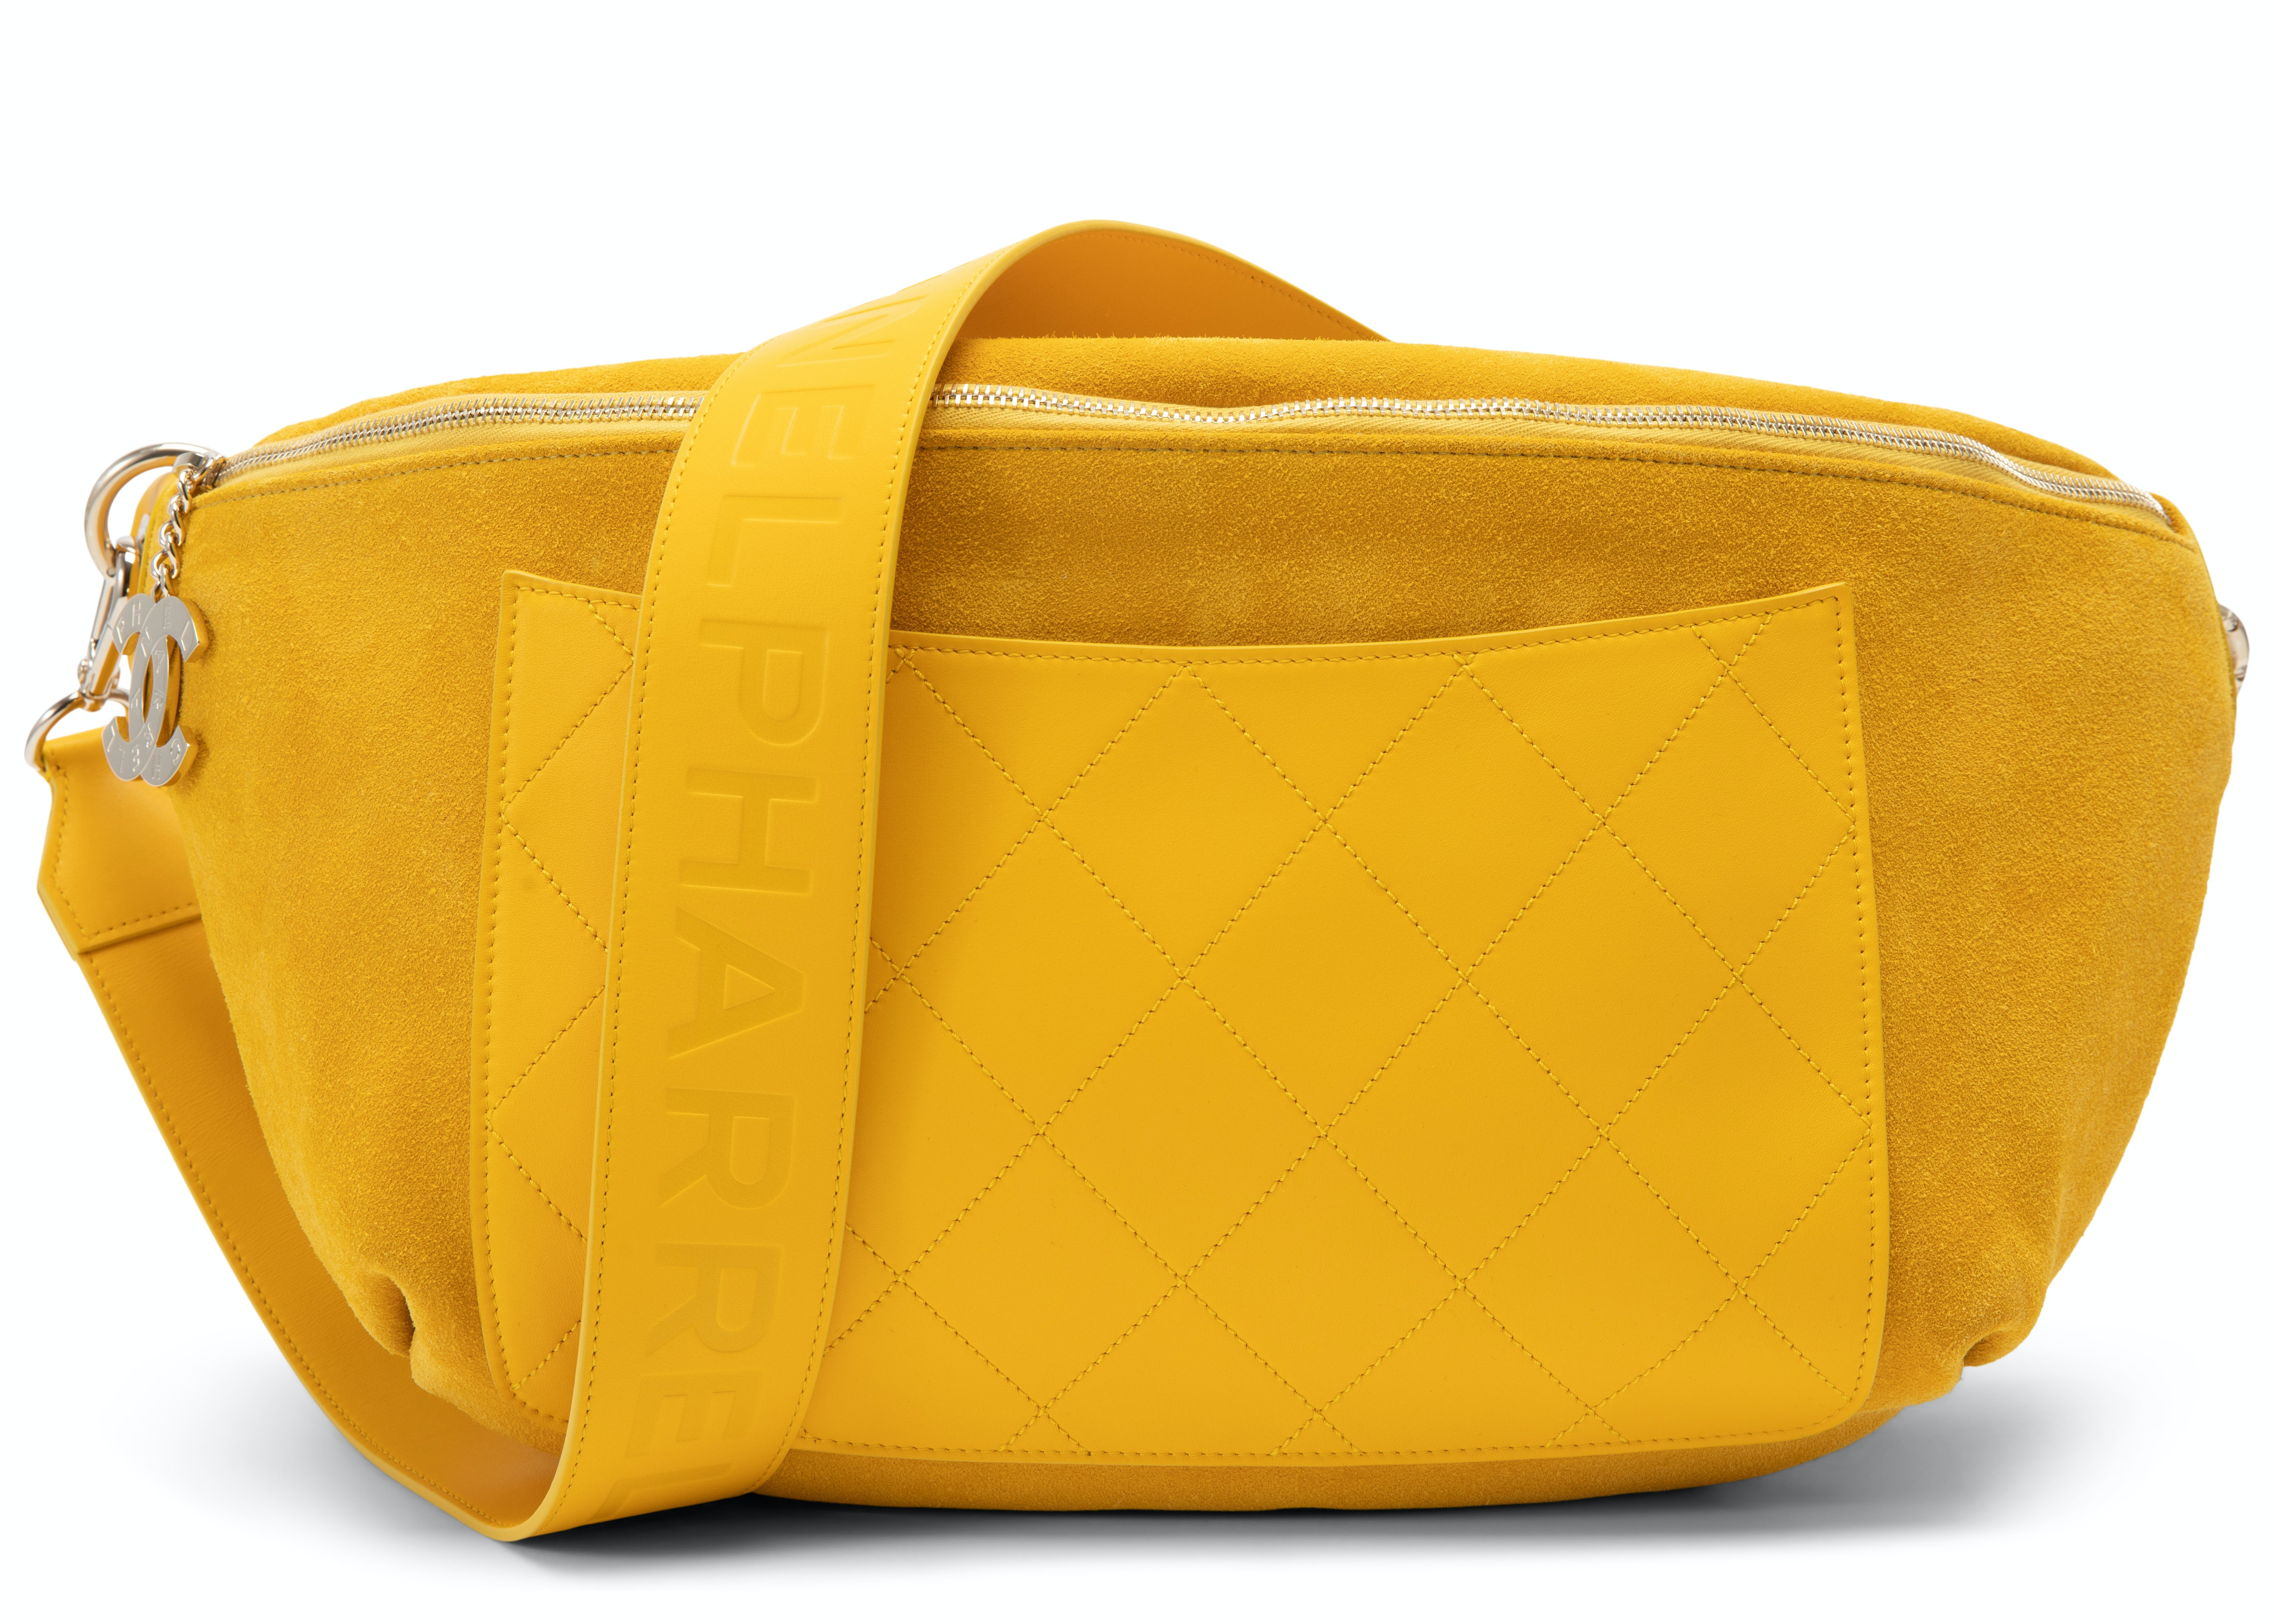 Chanel x Pharrell Waist Bag Yellow